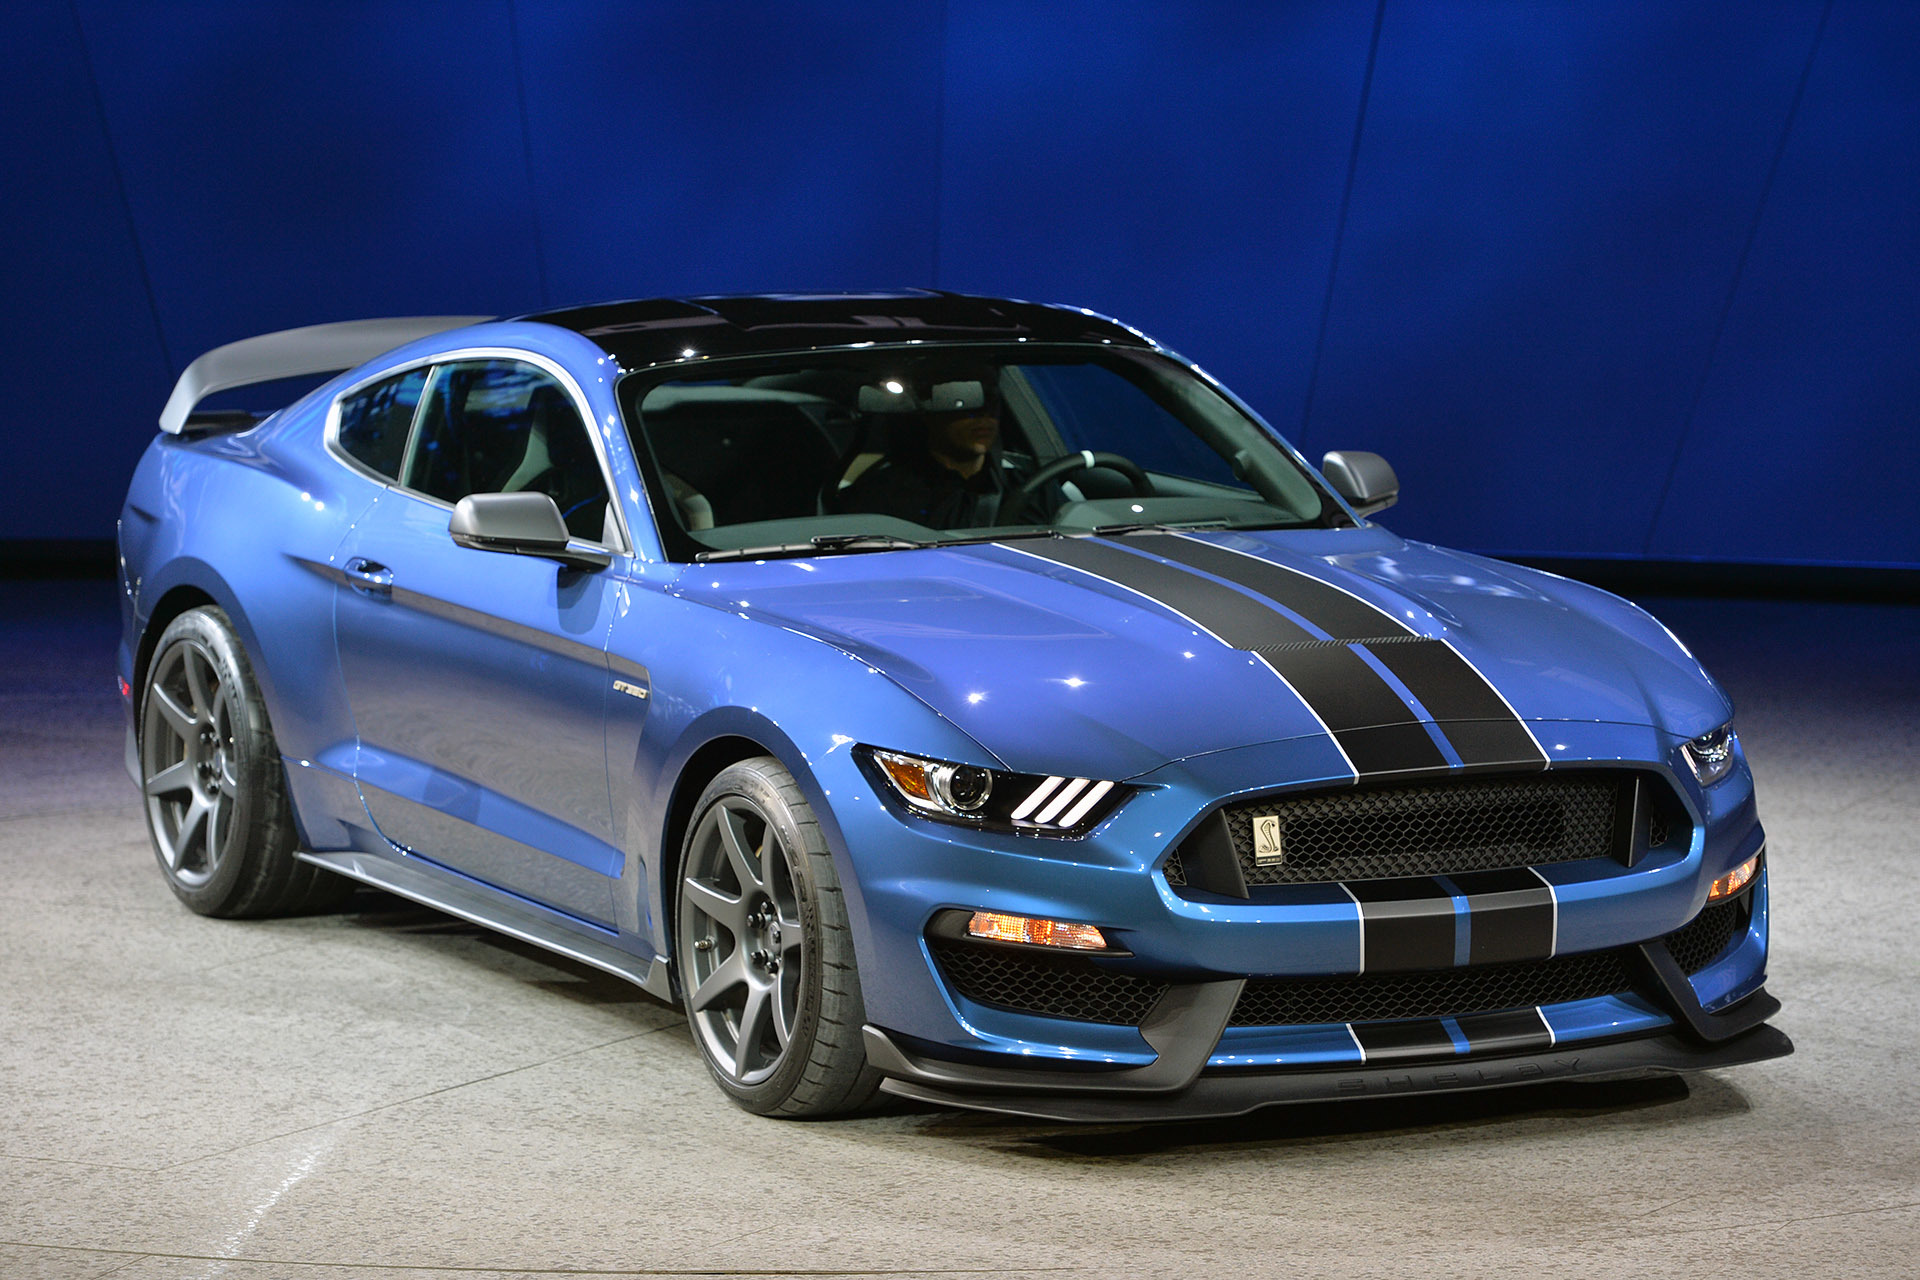 ford mustang vi 2014 2021 page 28 auto titre. Black Bedroom Furniture Sets. Home Design Ideas